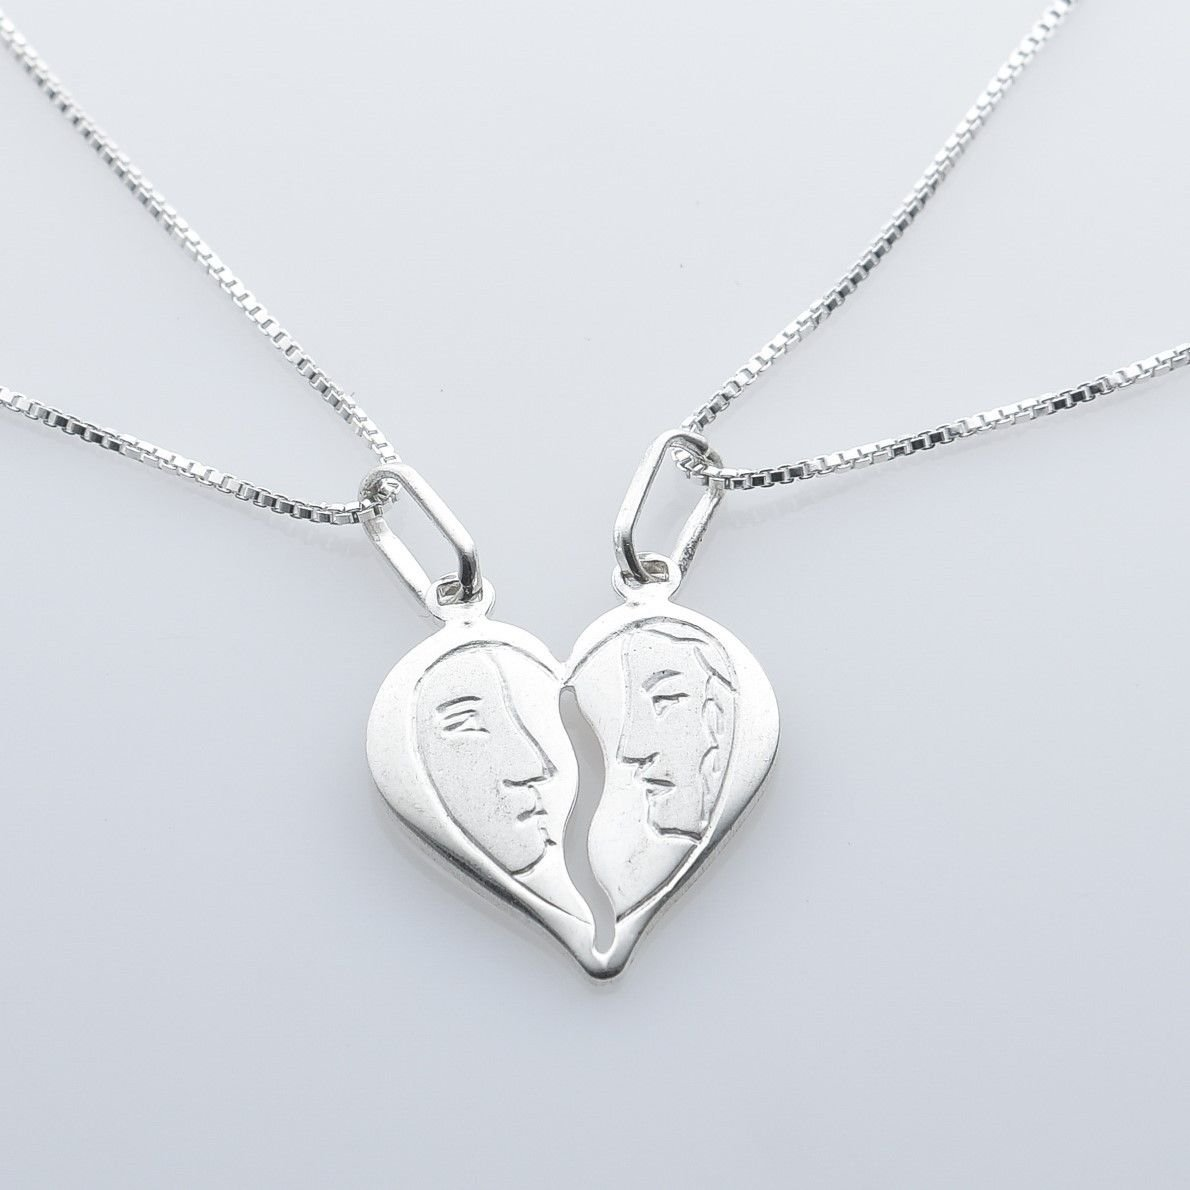 Fashion solid silver 925 pendant broken heart with 2 chains ! Gift & Jewelry